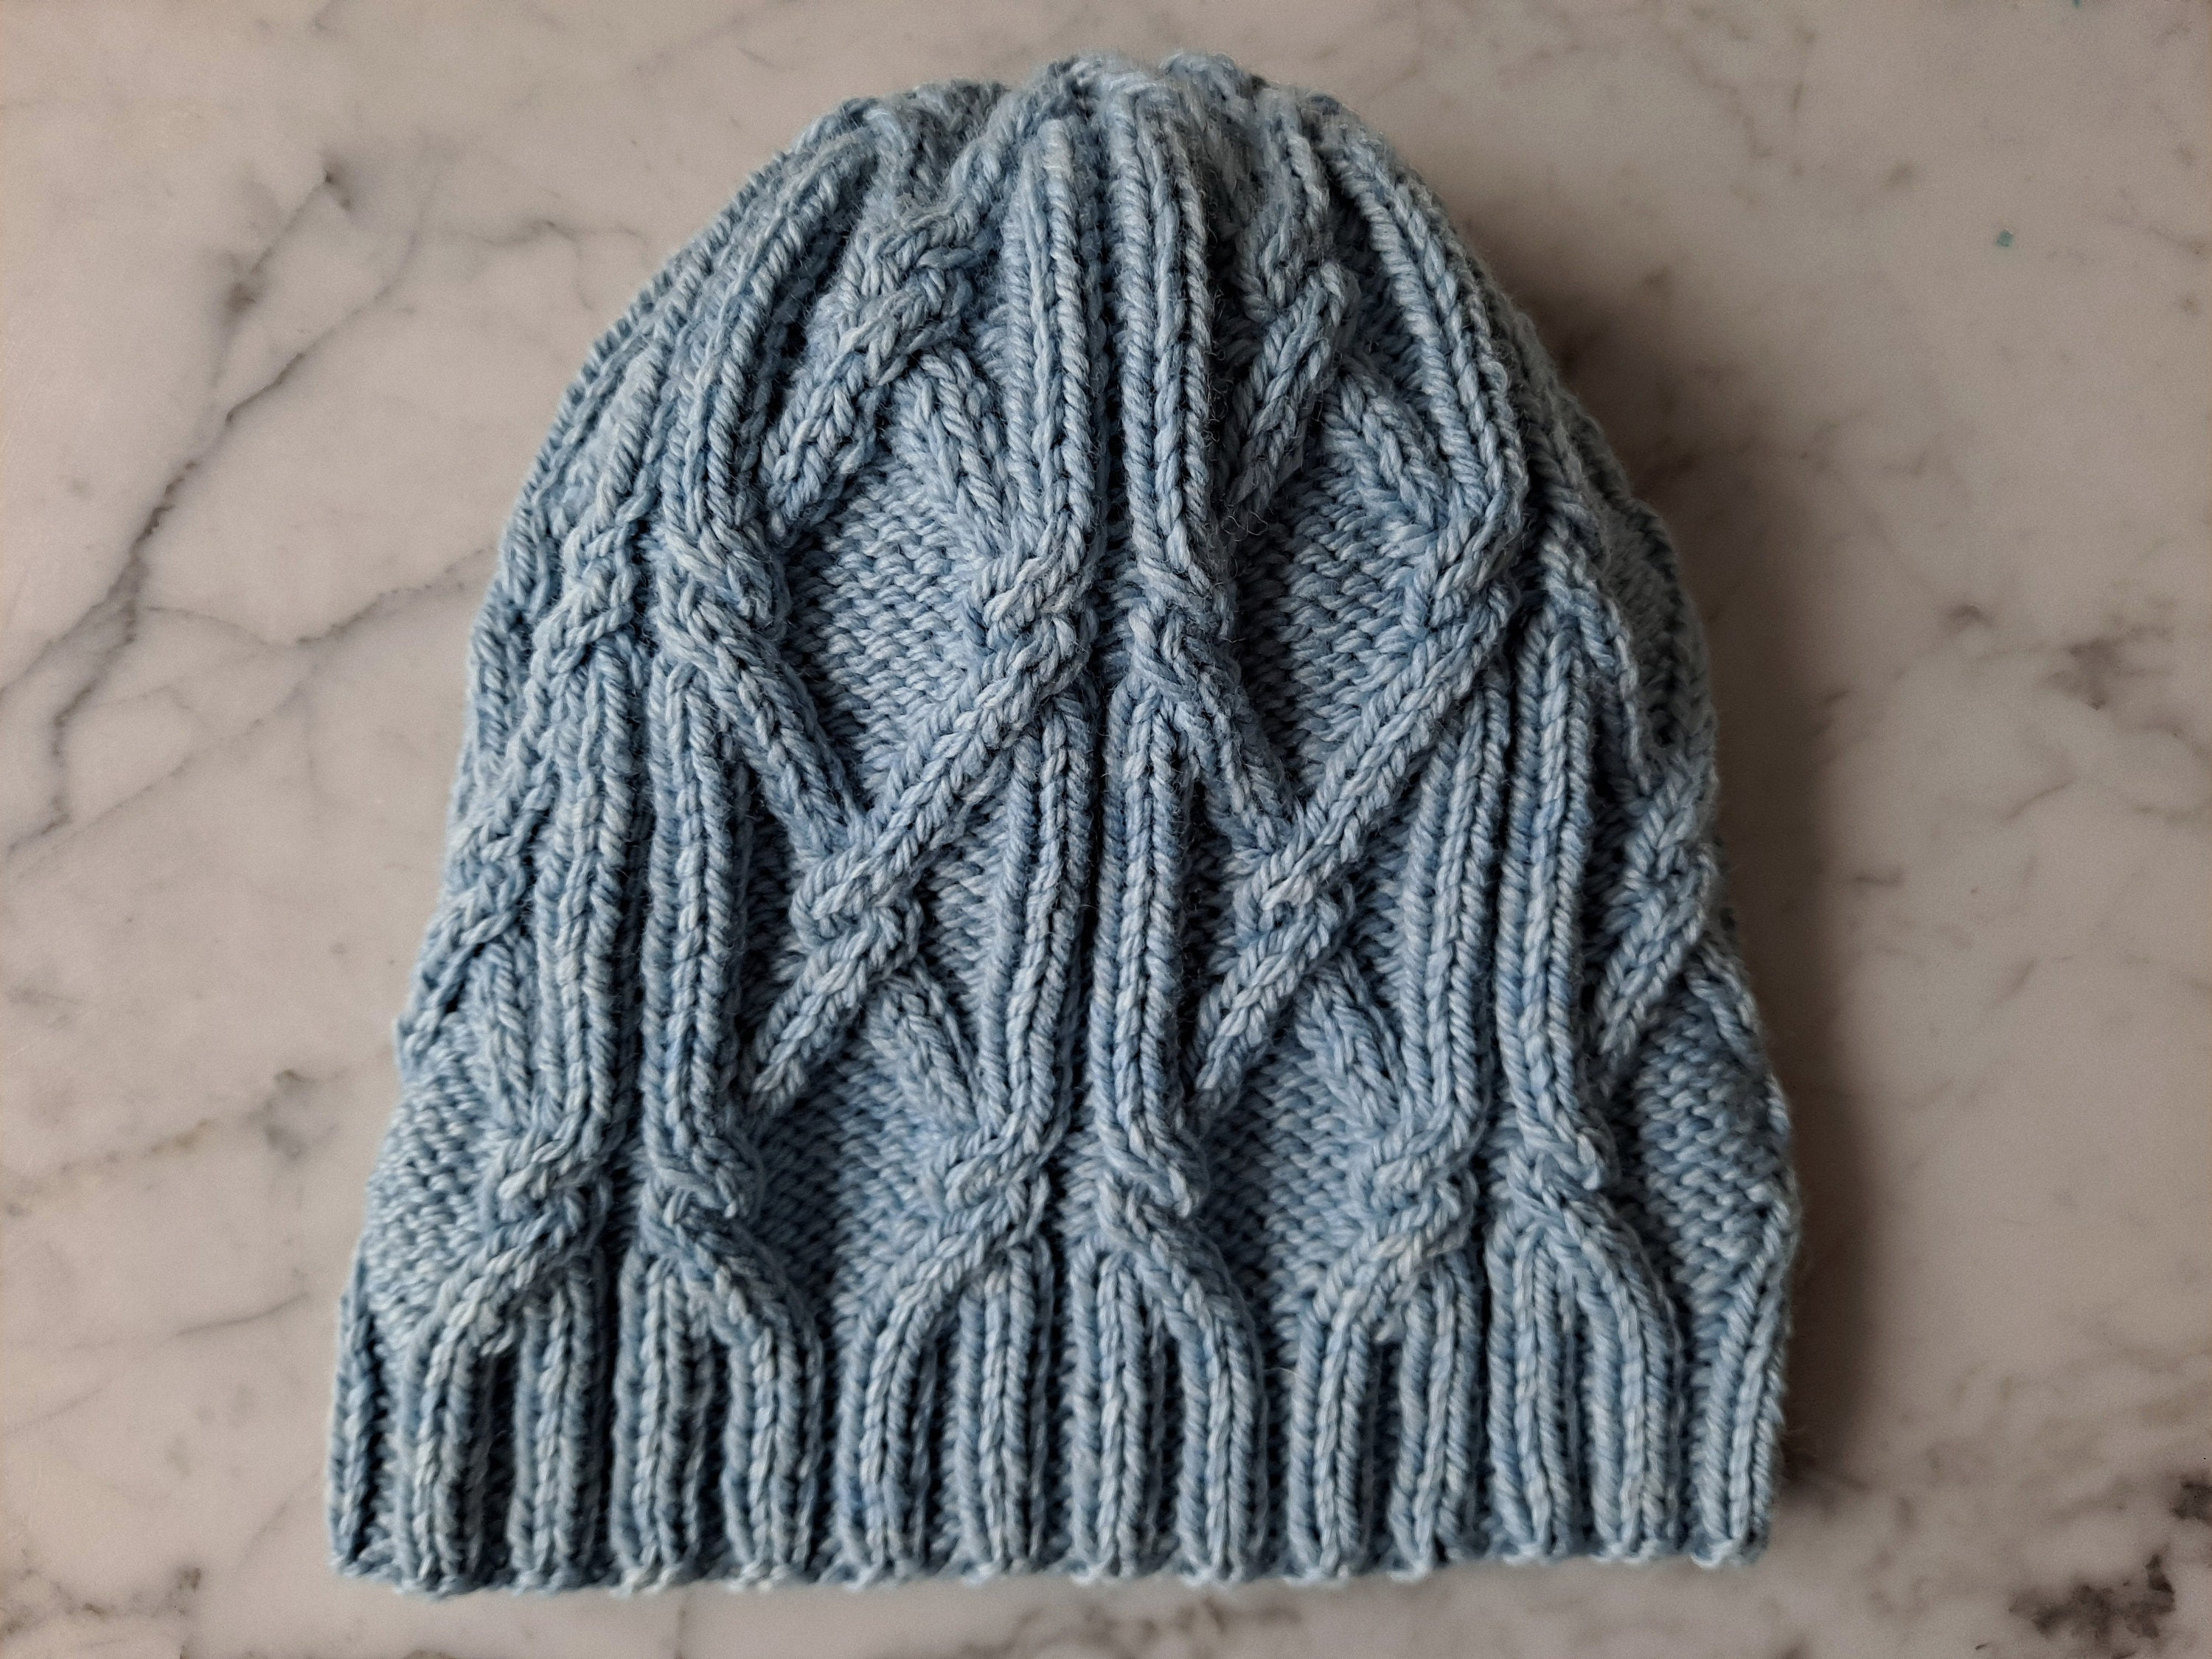 A pale blue cabled hat lies flat on a marble background.